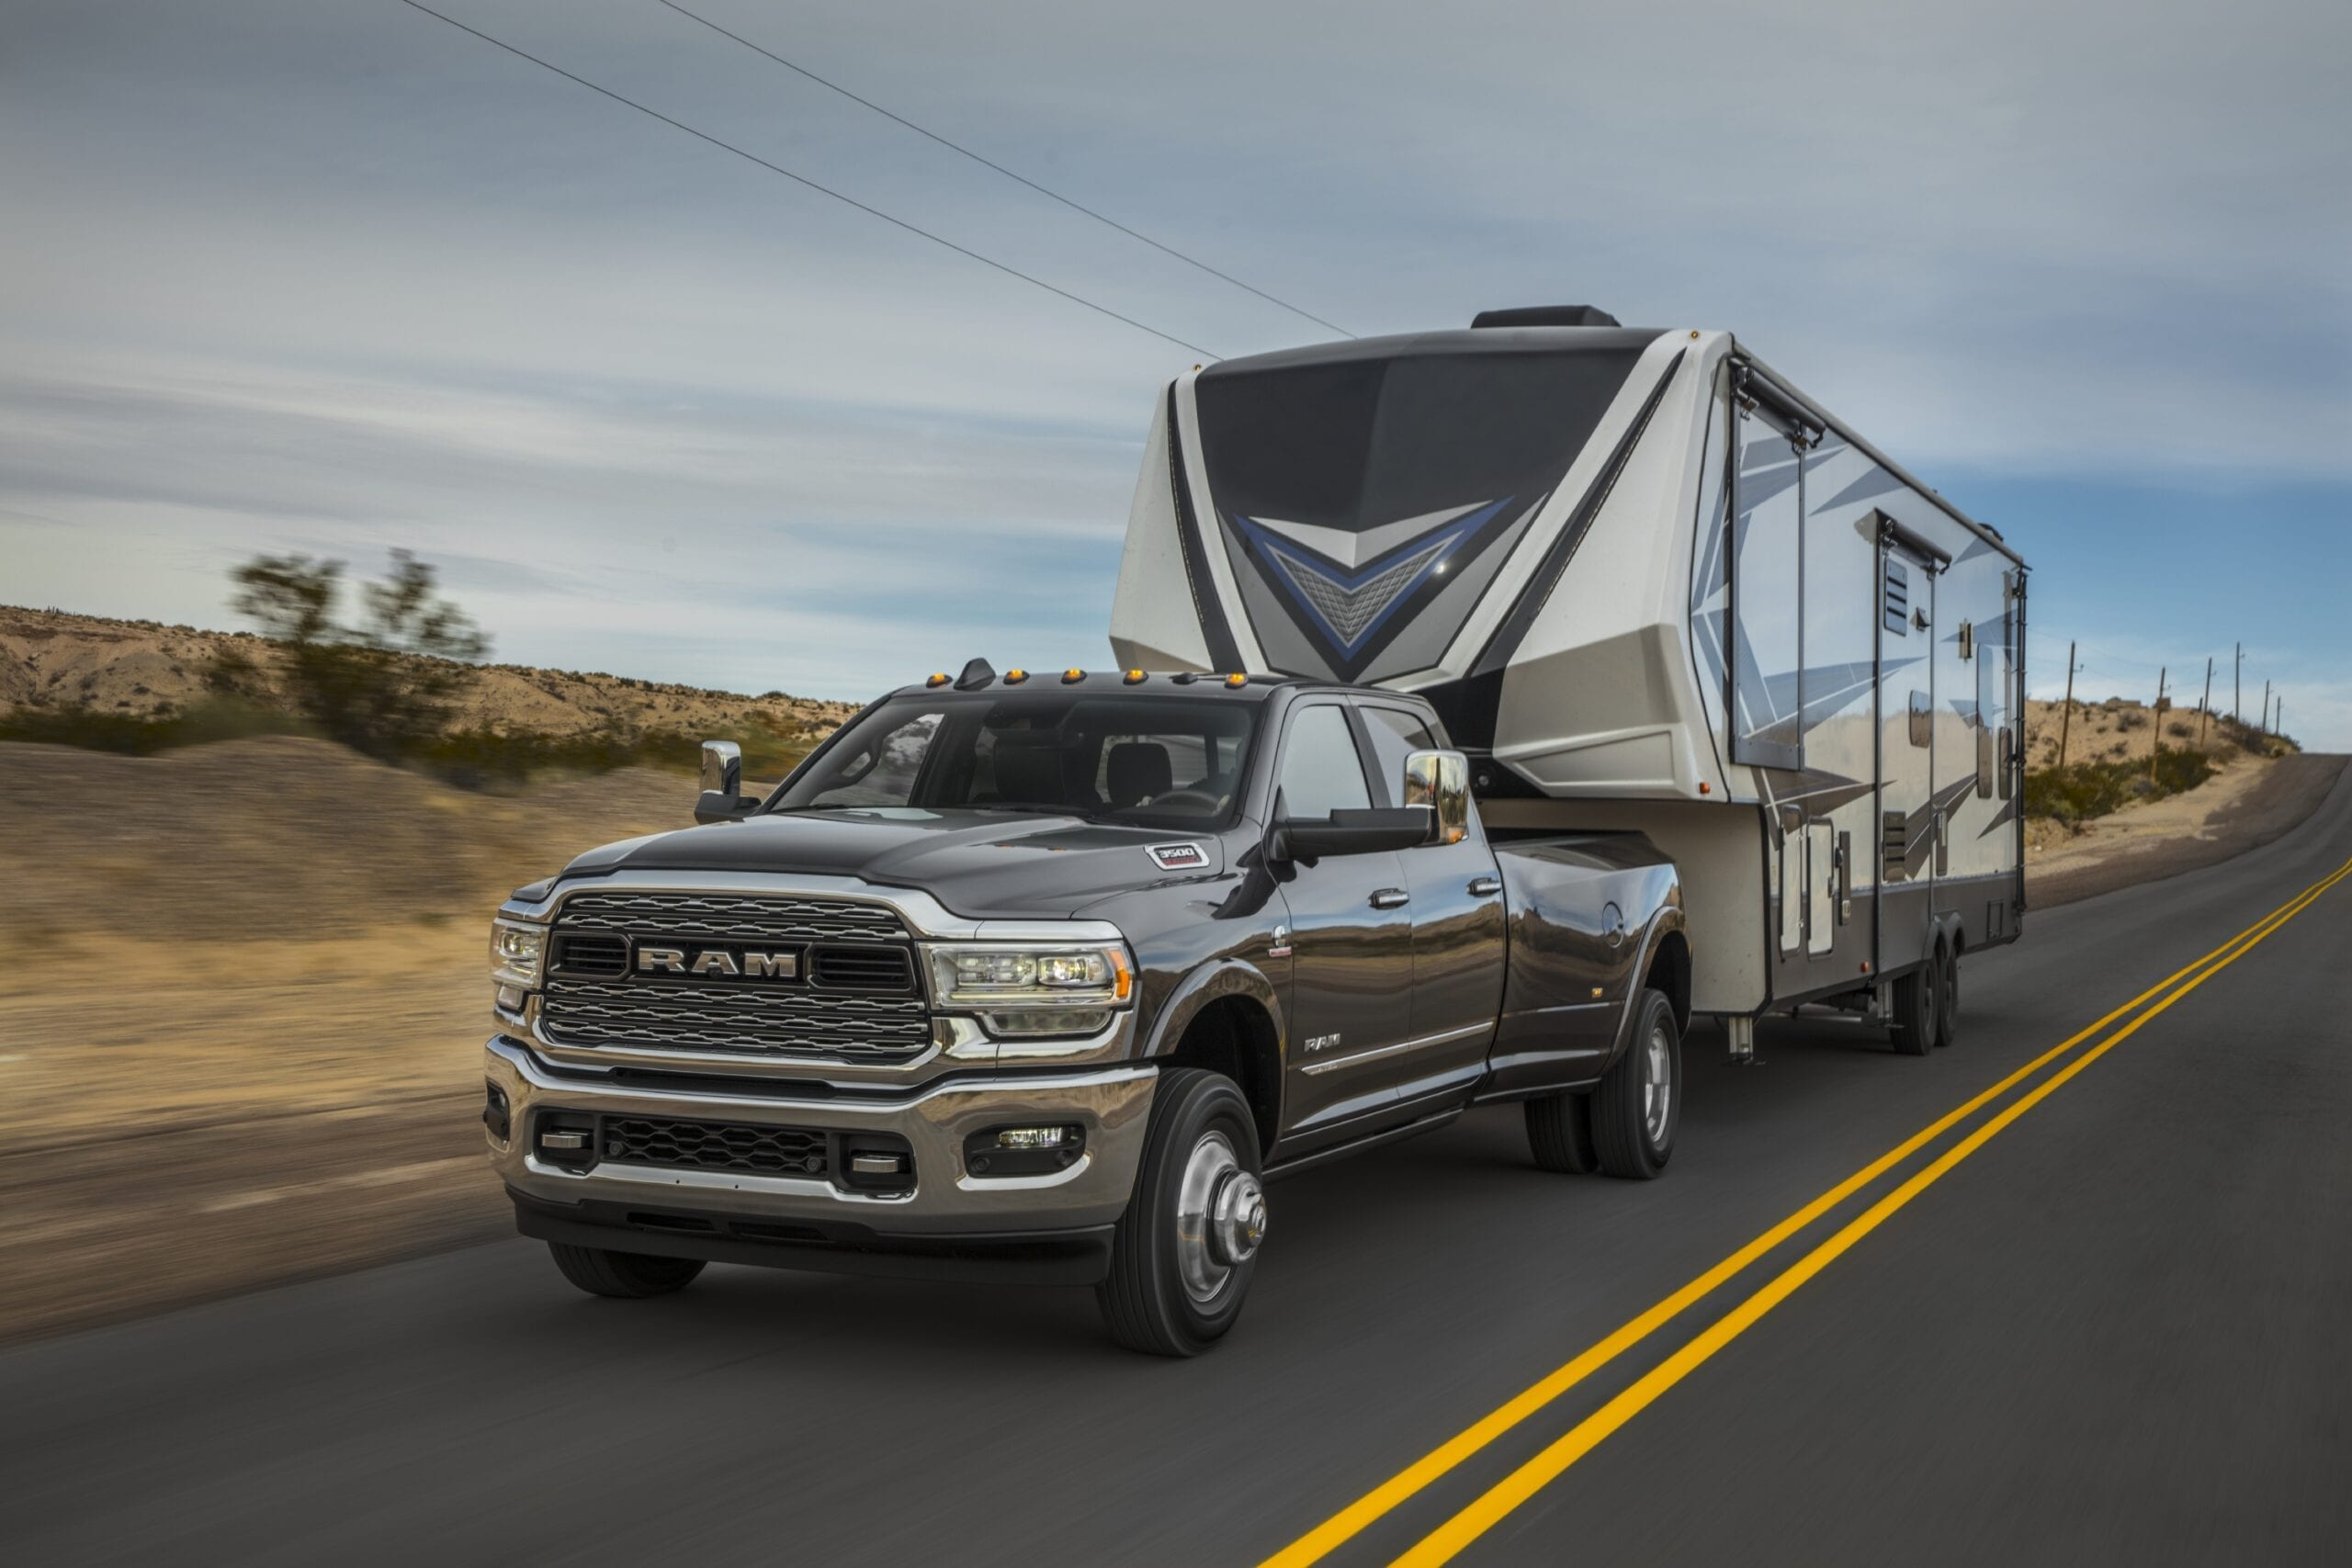 2021 Ram HD tow rating